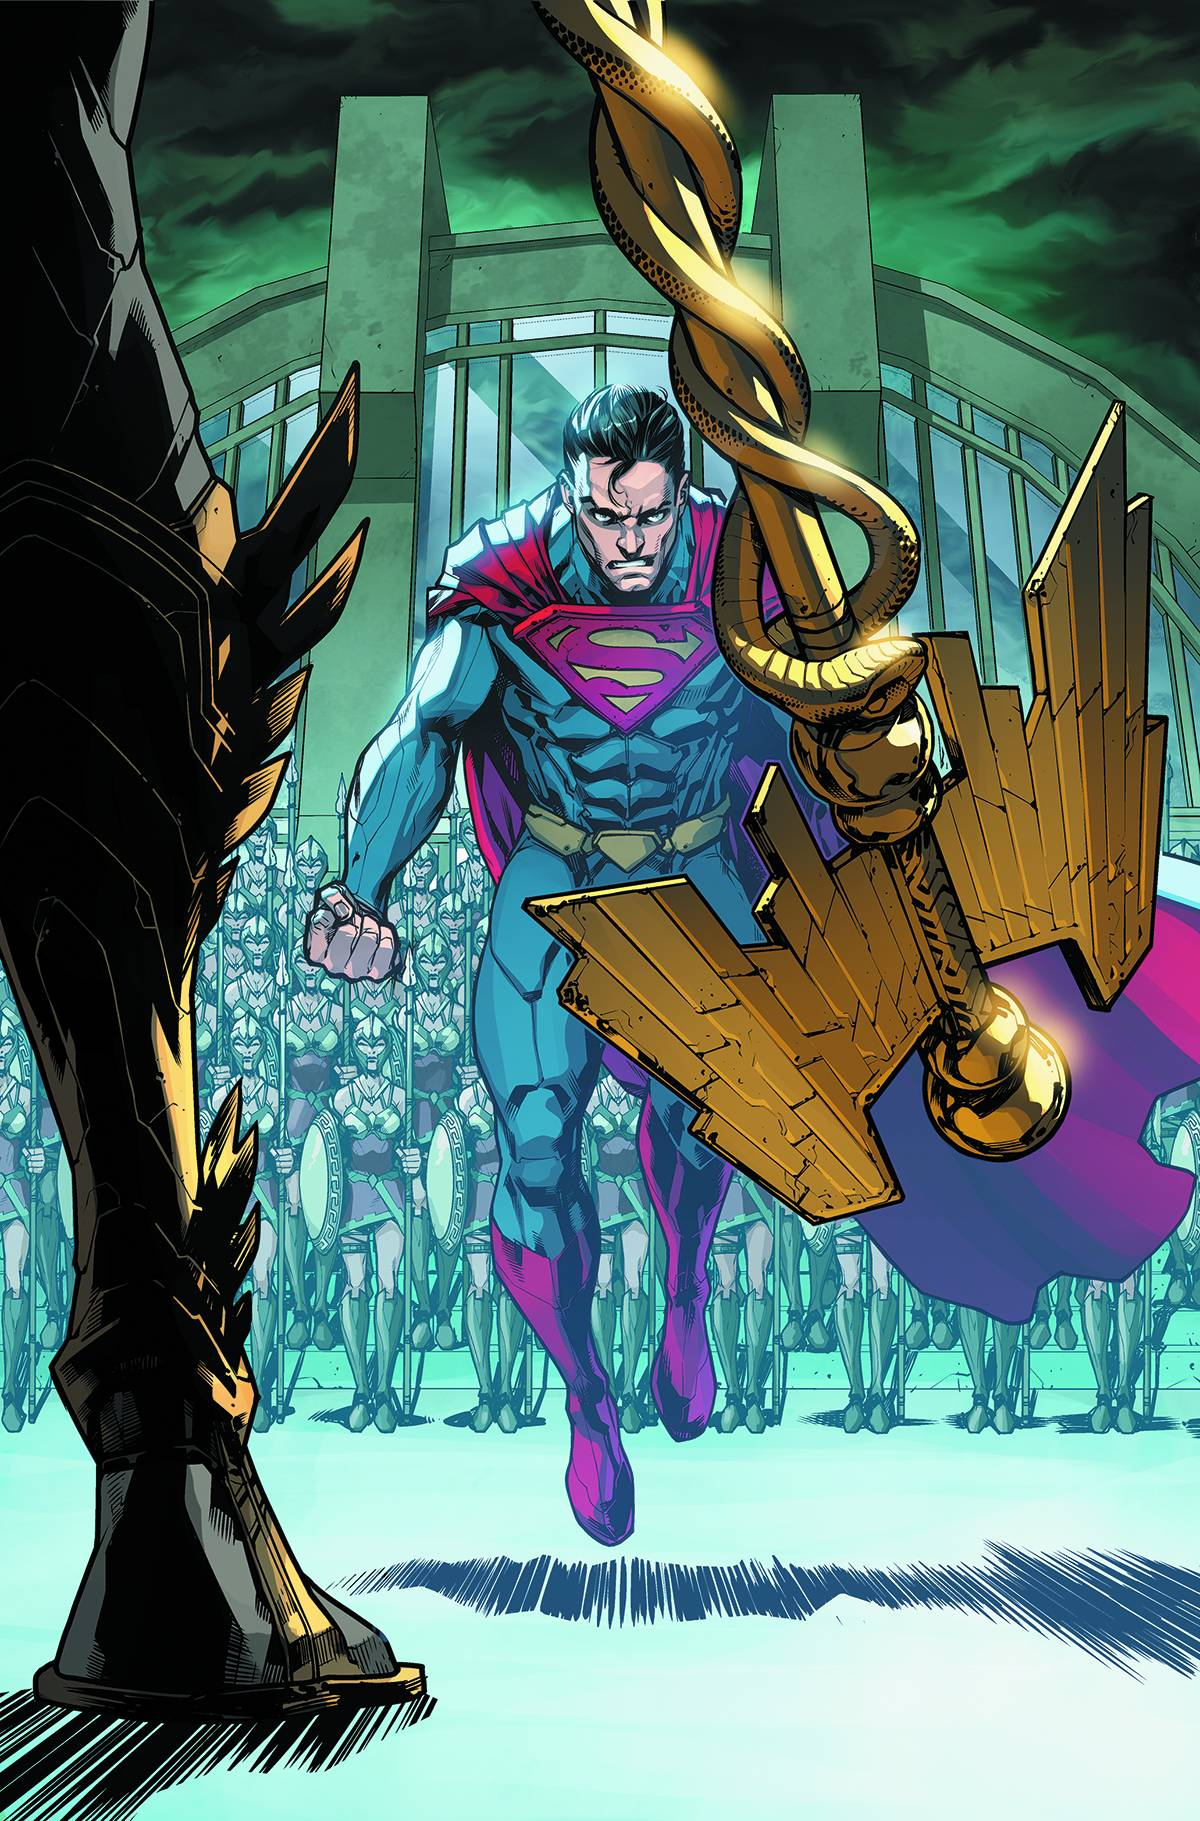 Cover clipart injustice #15